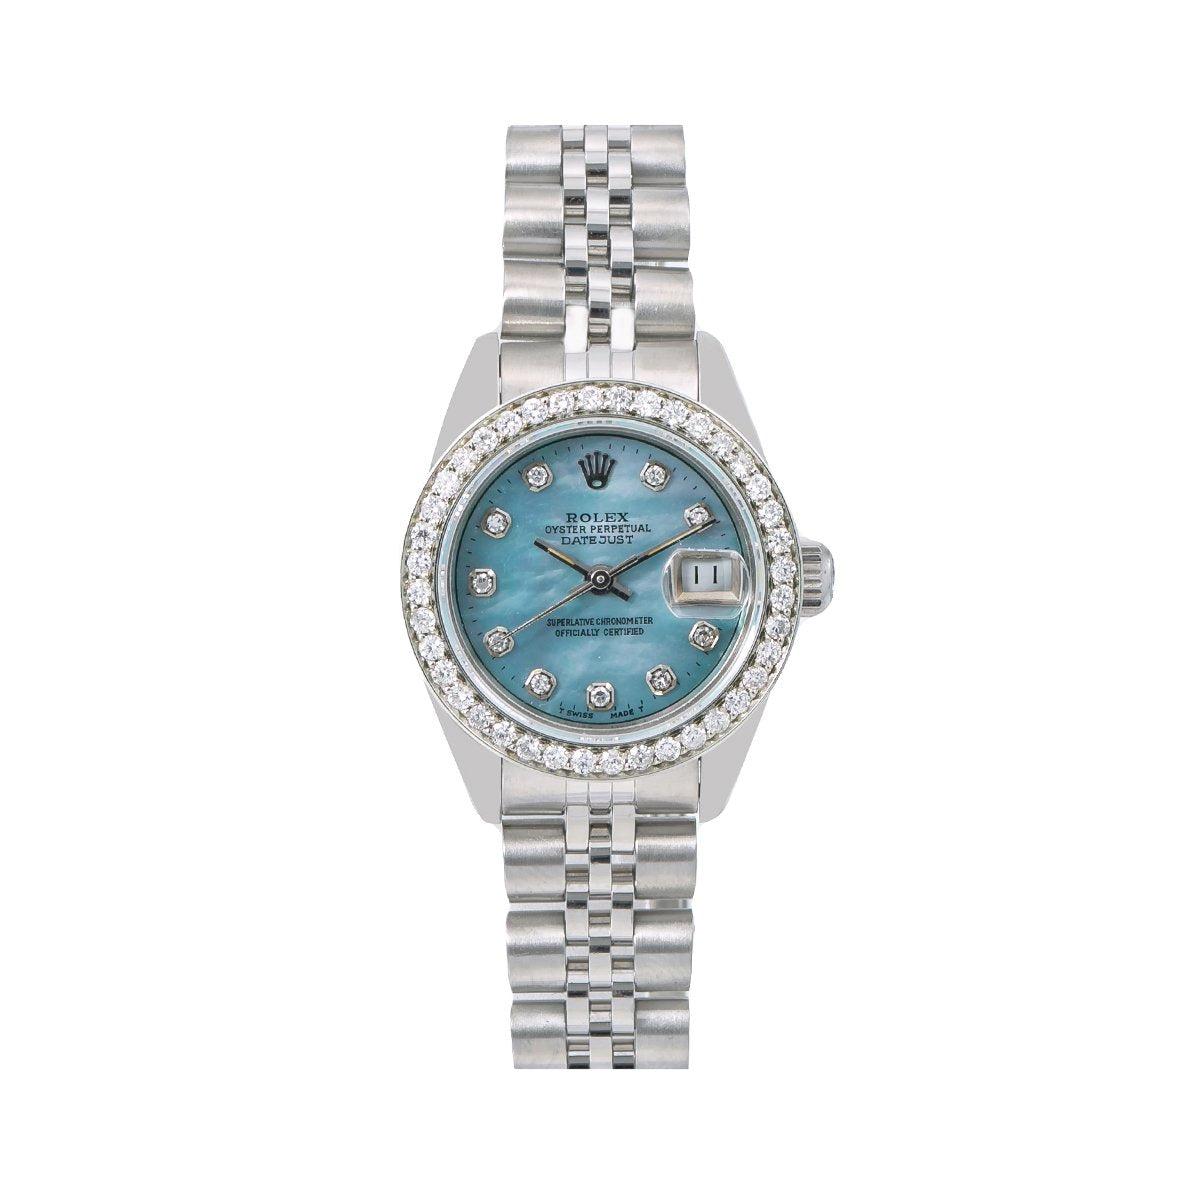 863848e48e6 Rolex Oyster Perpetual Lady DateJust 69240 26MM Blue Diamond Dial With -  majorleaguejewelers